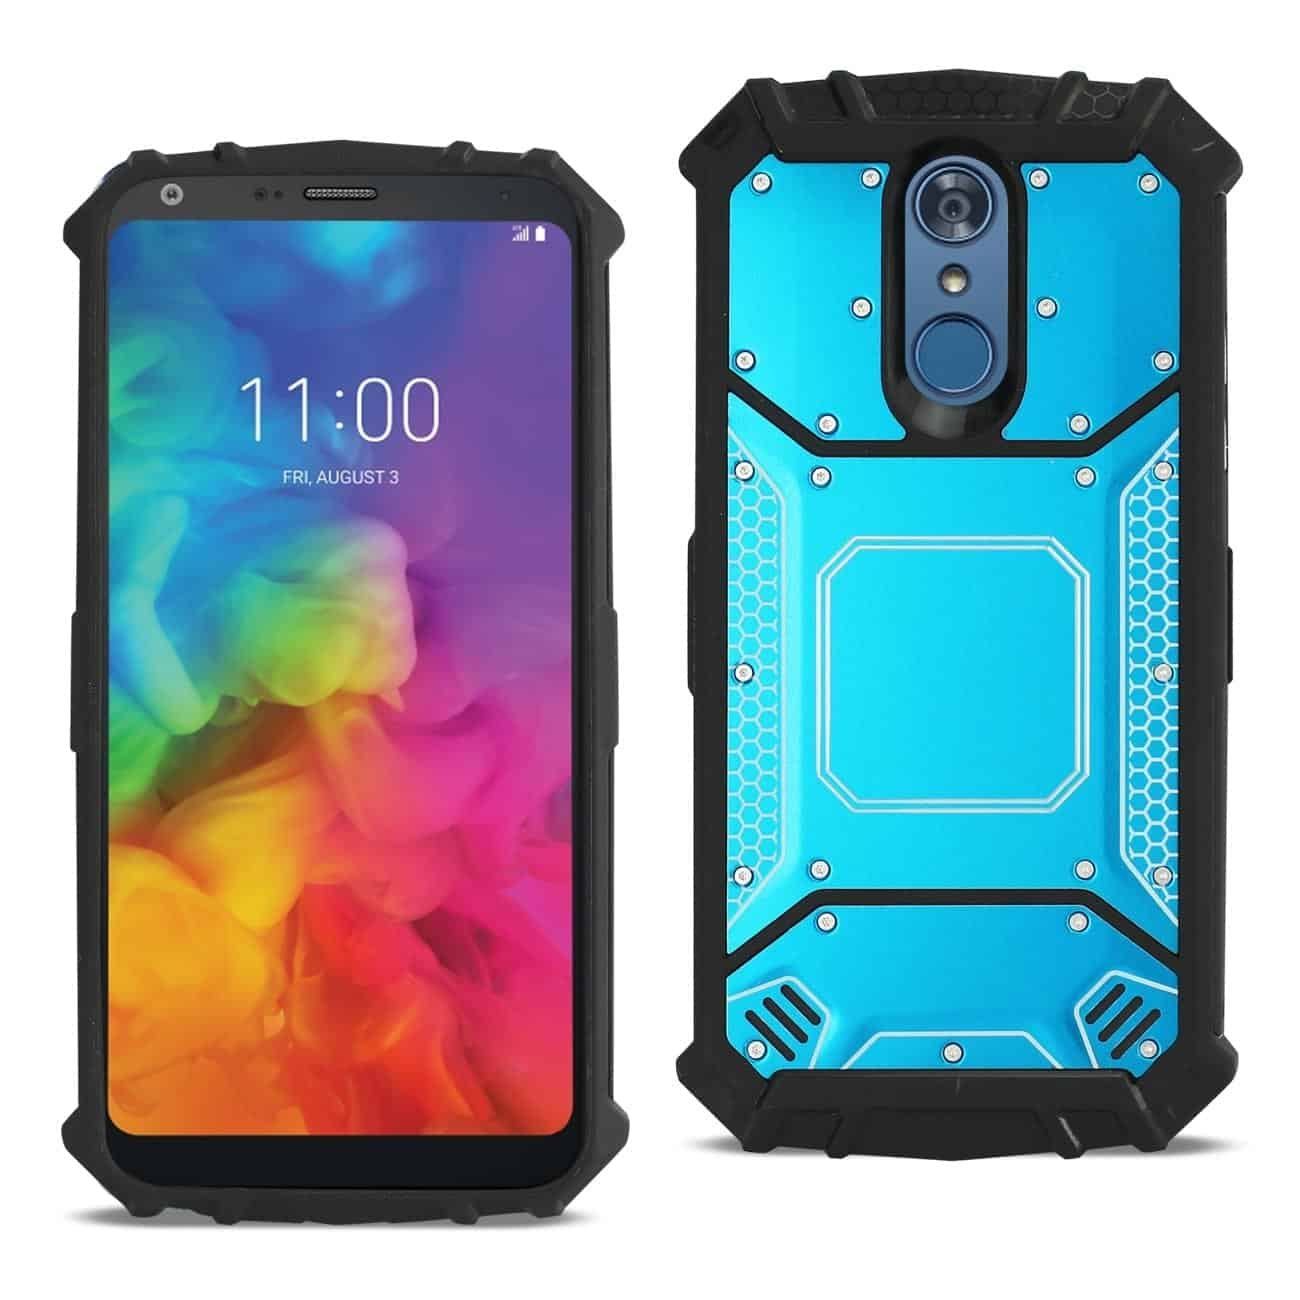 LG Q7 Plus Metallic Front Cover Case In Blue